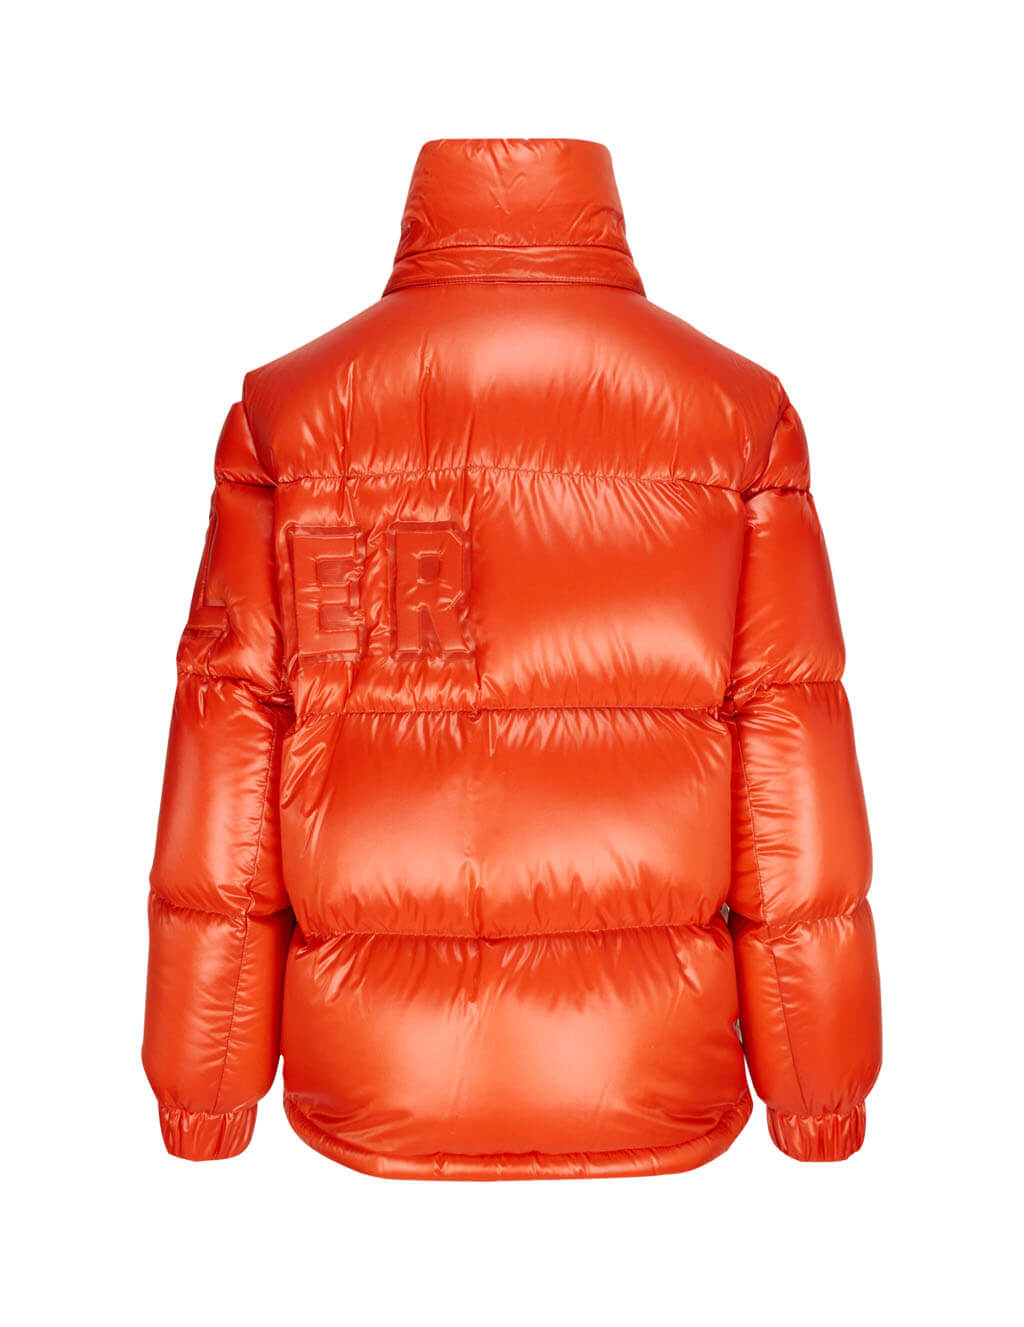 Women's Moncler Guernic Jacket in Orange. 0931A52E4068991300